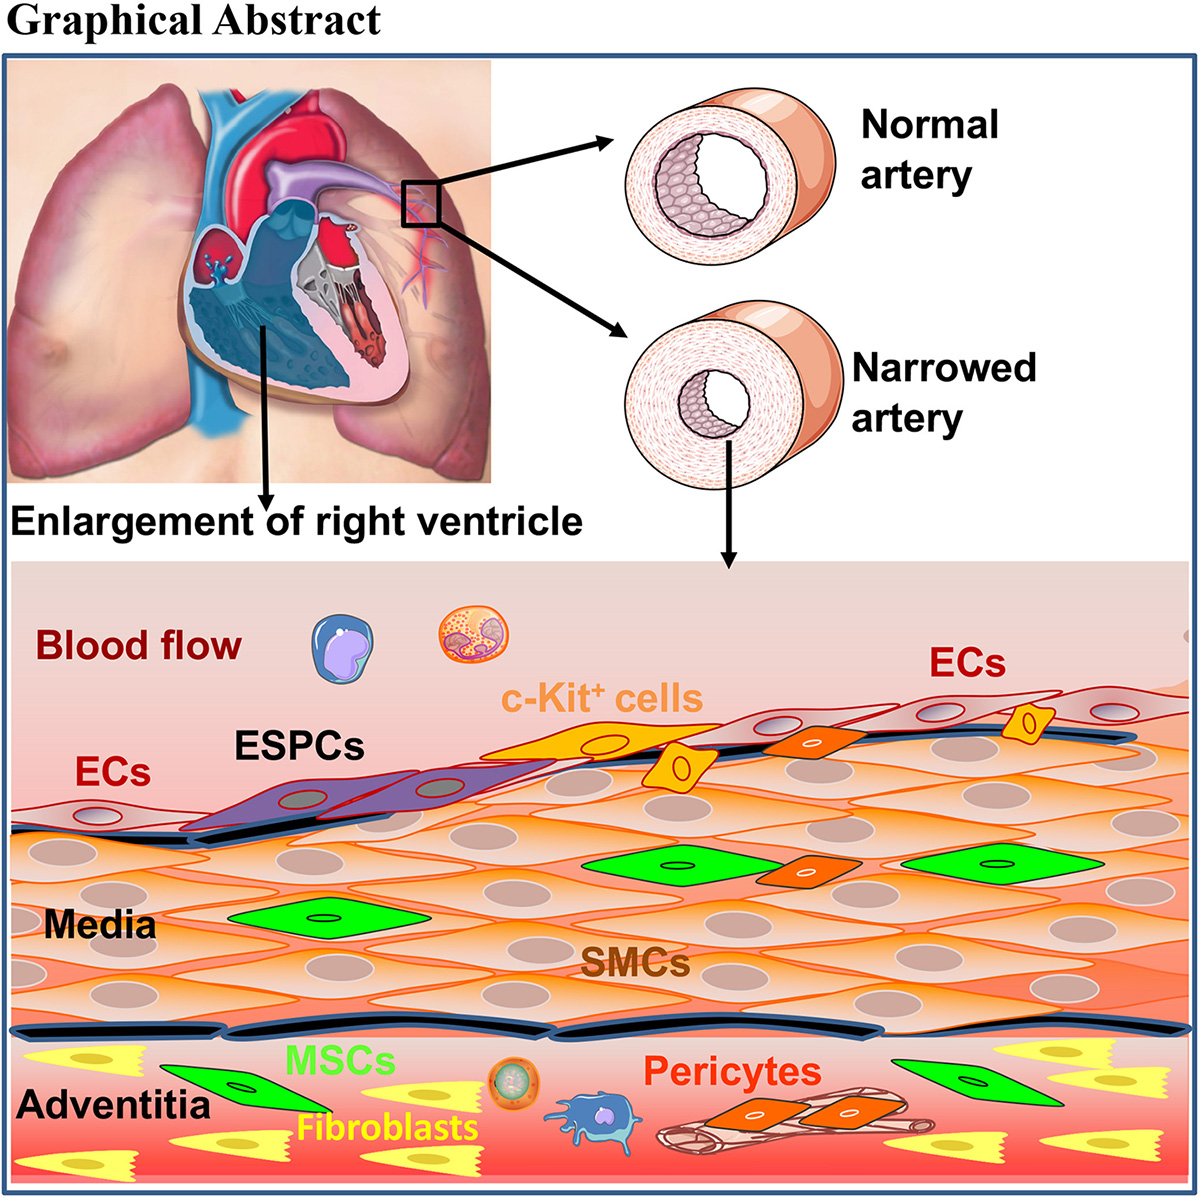 Stem/Progenitor Cells and Pulmonary Arterial Hypertension |  Arteriosclerosis, Thrombosis, and Vascular Biology